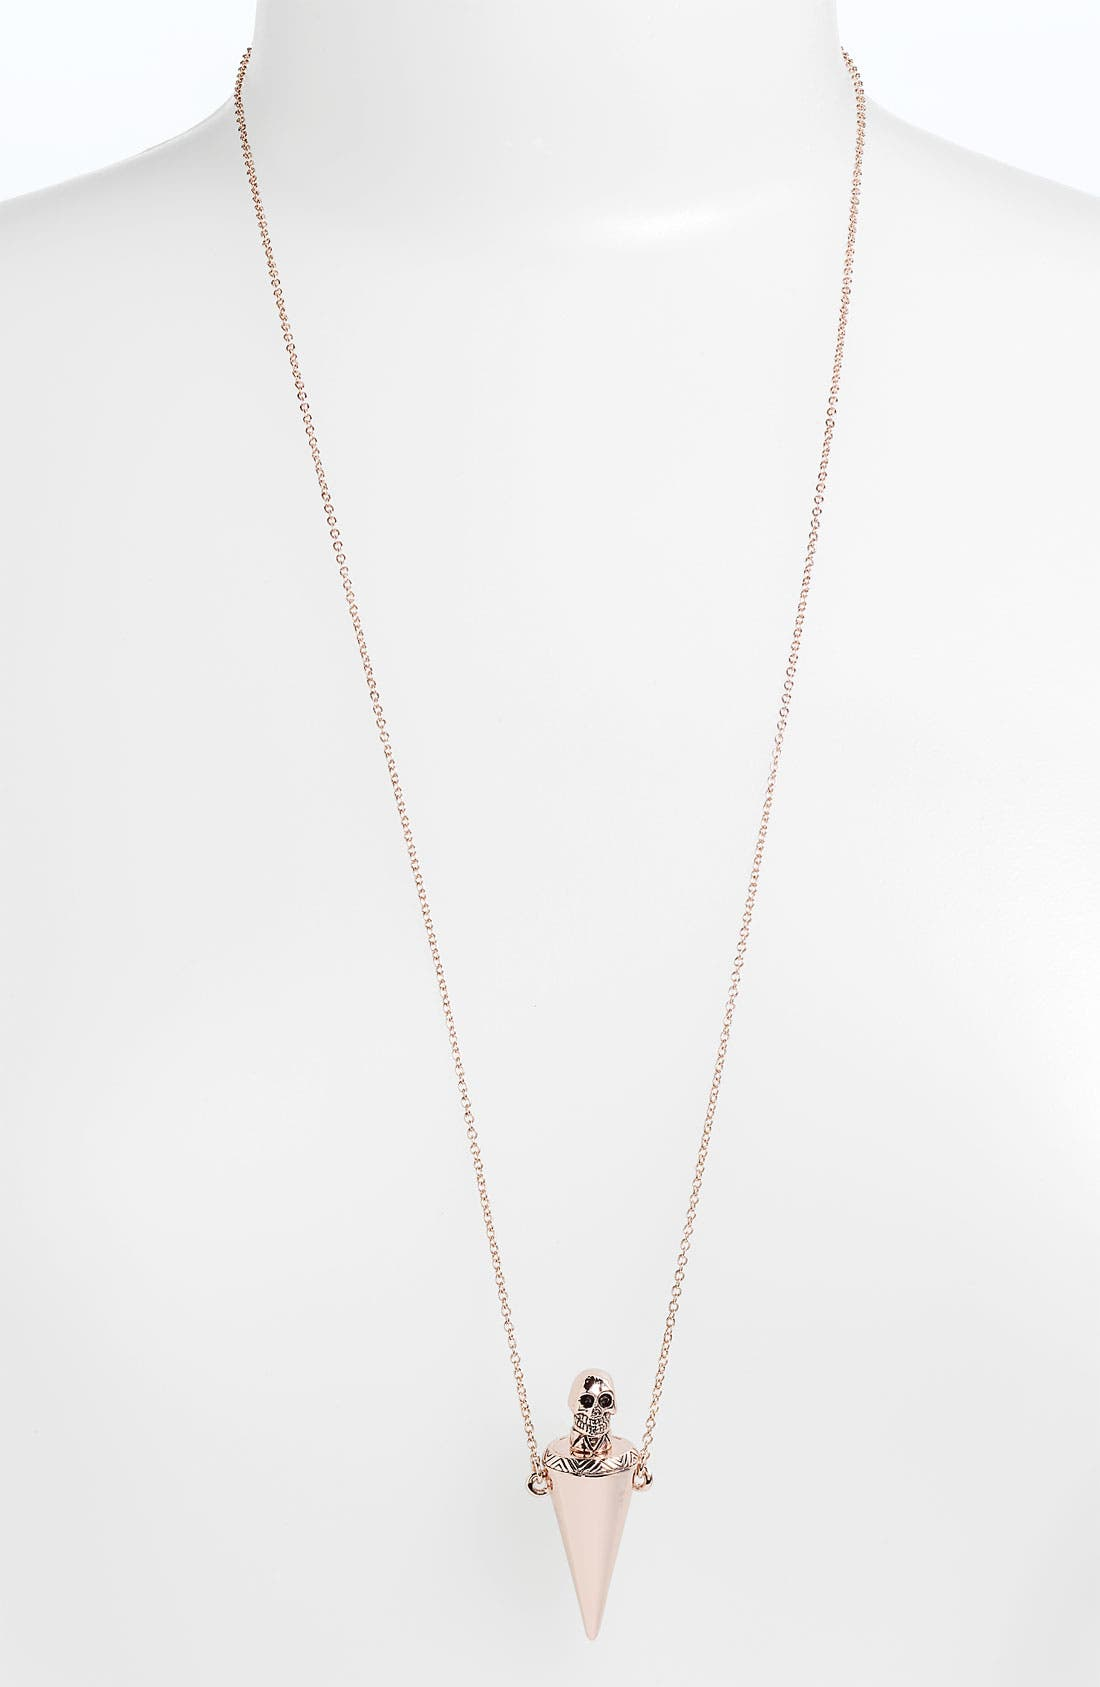 Main Image - House of Harlow 1960 'Skull Vial' Necklace